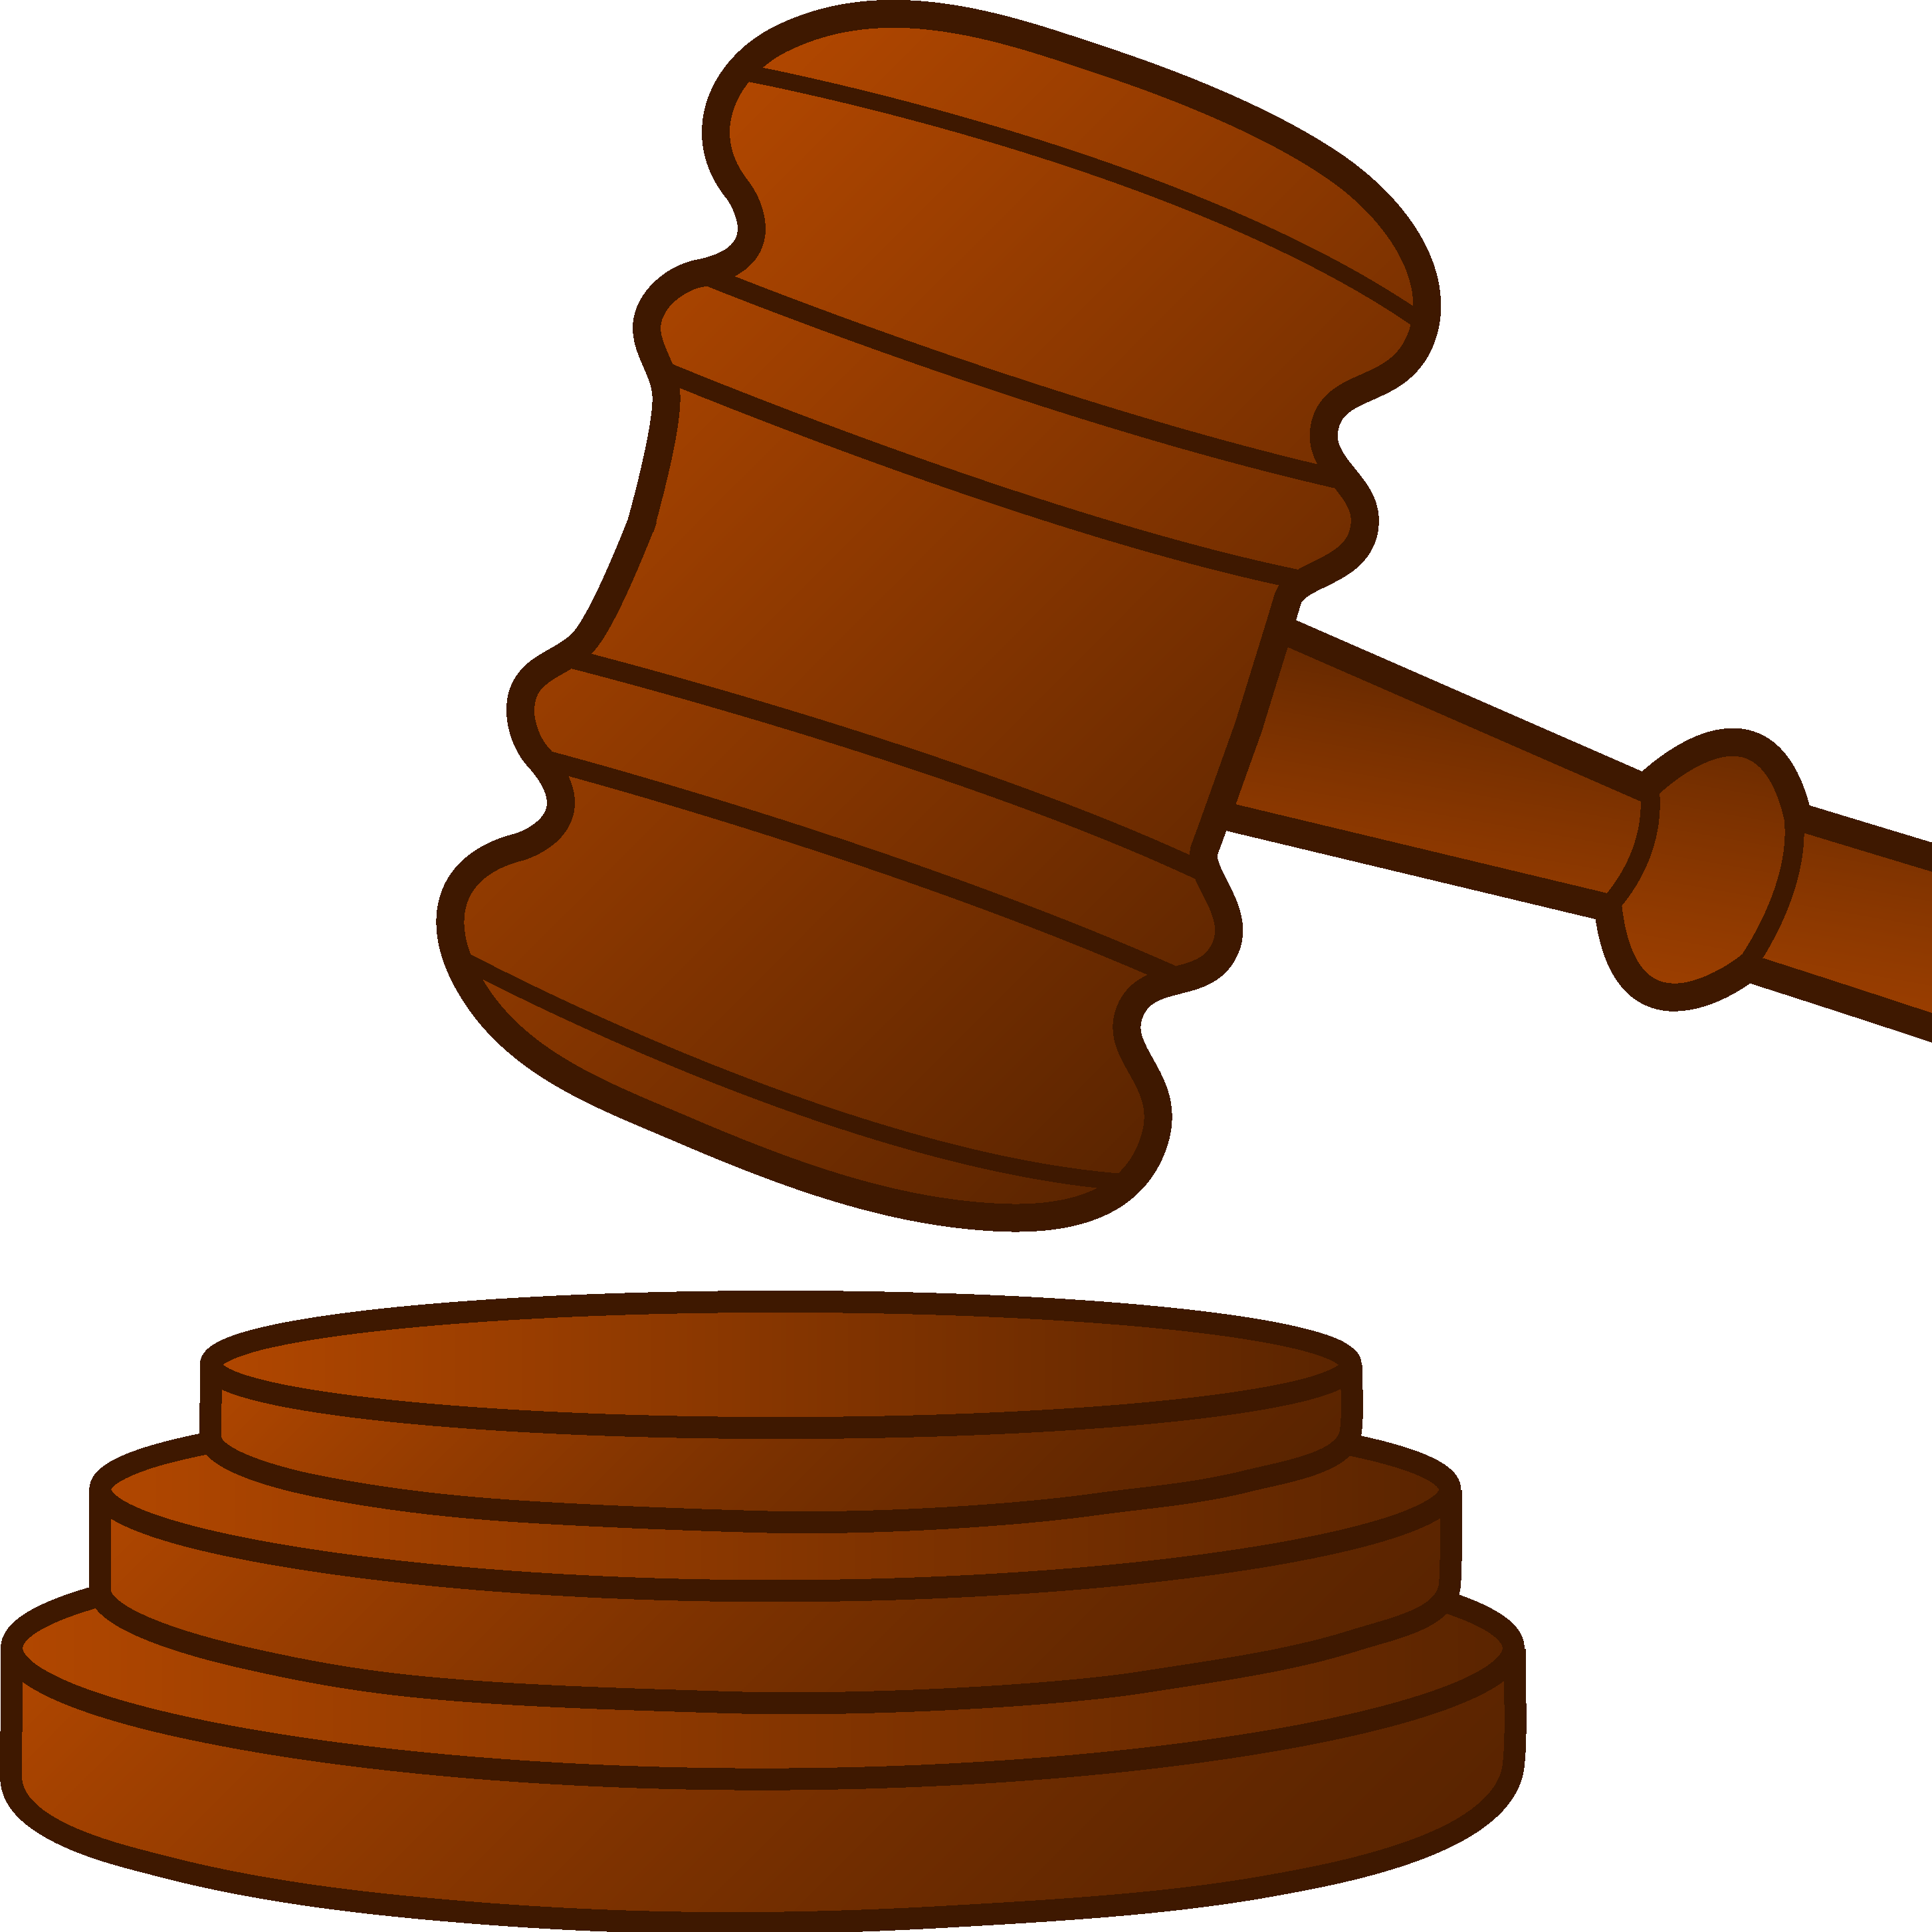 Law book clipart clip art library CCCU Law/Mooting Soc (@CCCULawMoot) | Twitter clip art library